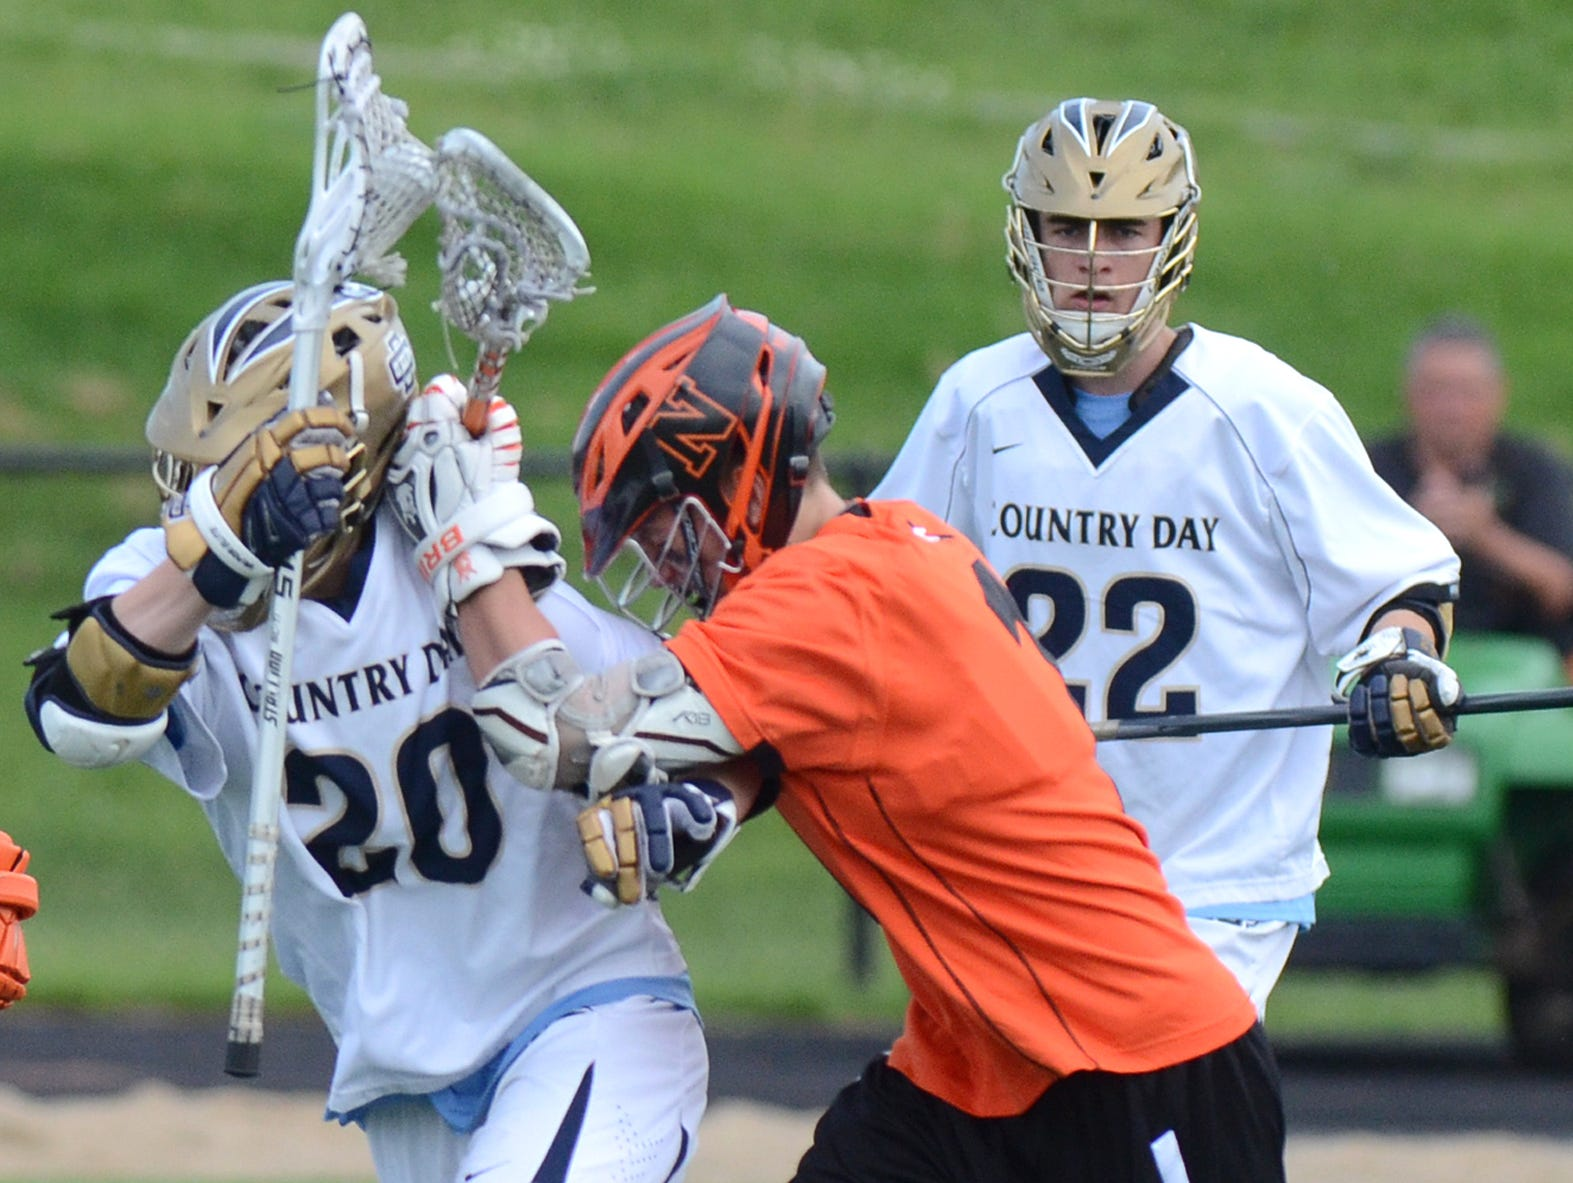 Northville's Harry Dyson (middle) checks Country Day's Cameron Barr during the Division 1-Region 3 boys lacrosse semifinal at Holzer Field.